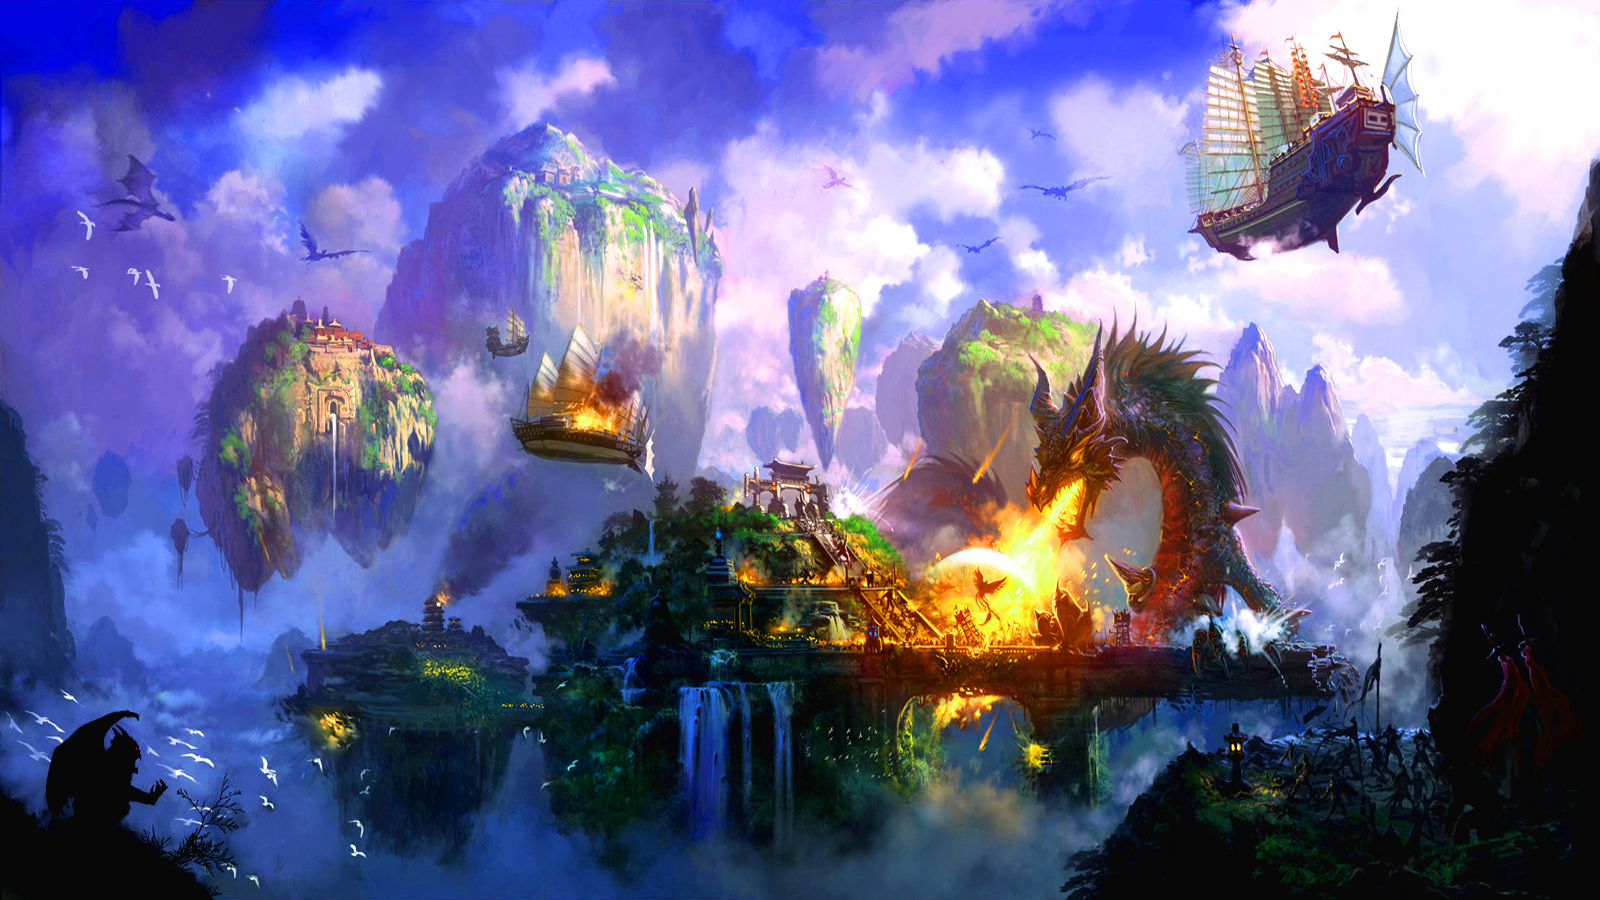 Runescape new game hd wallpapers all hd wallpapers New all hd video